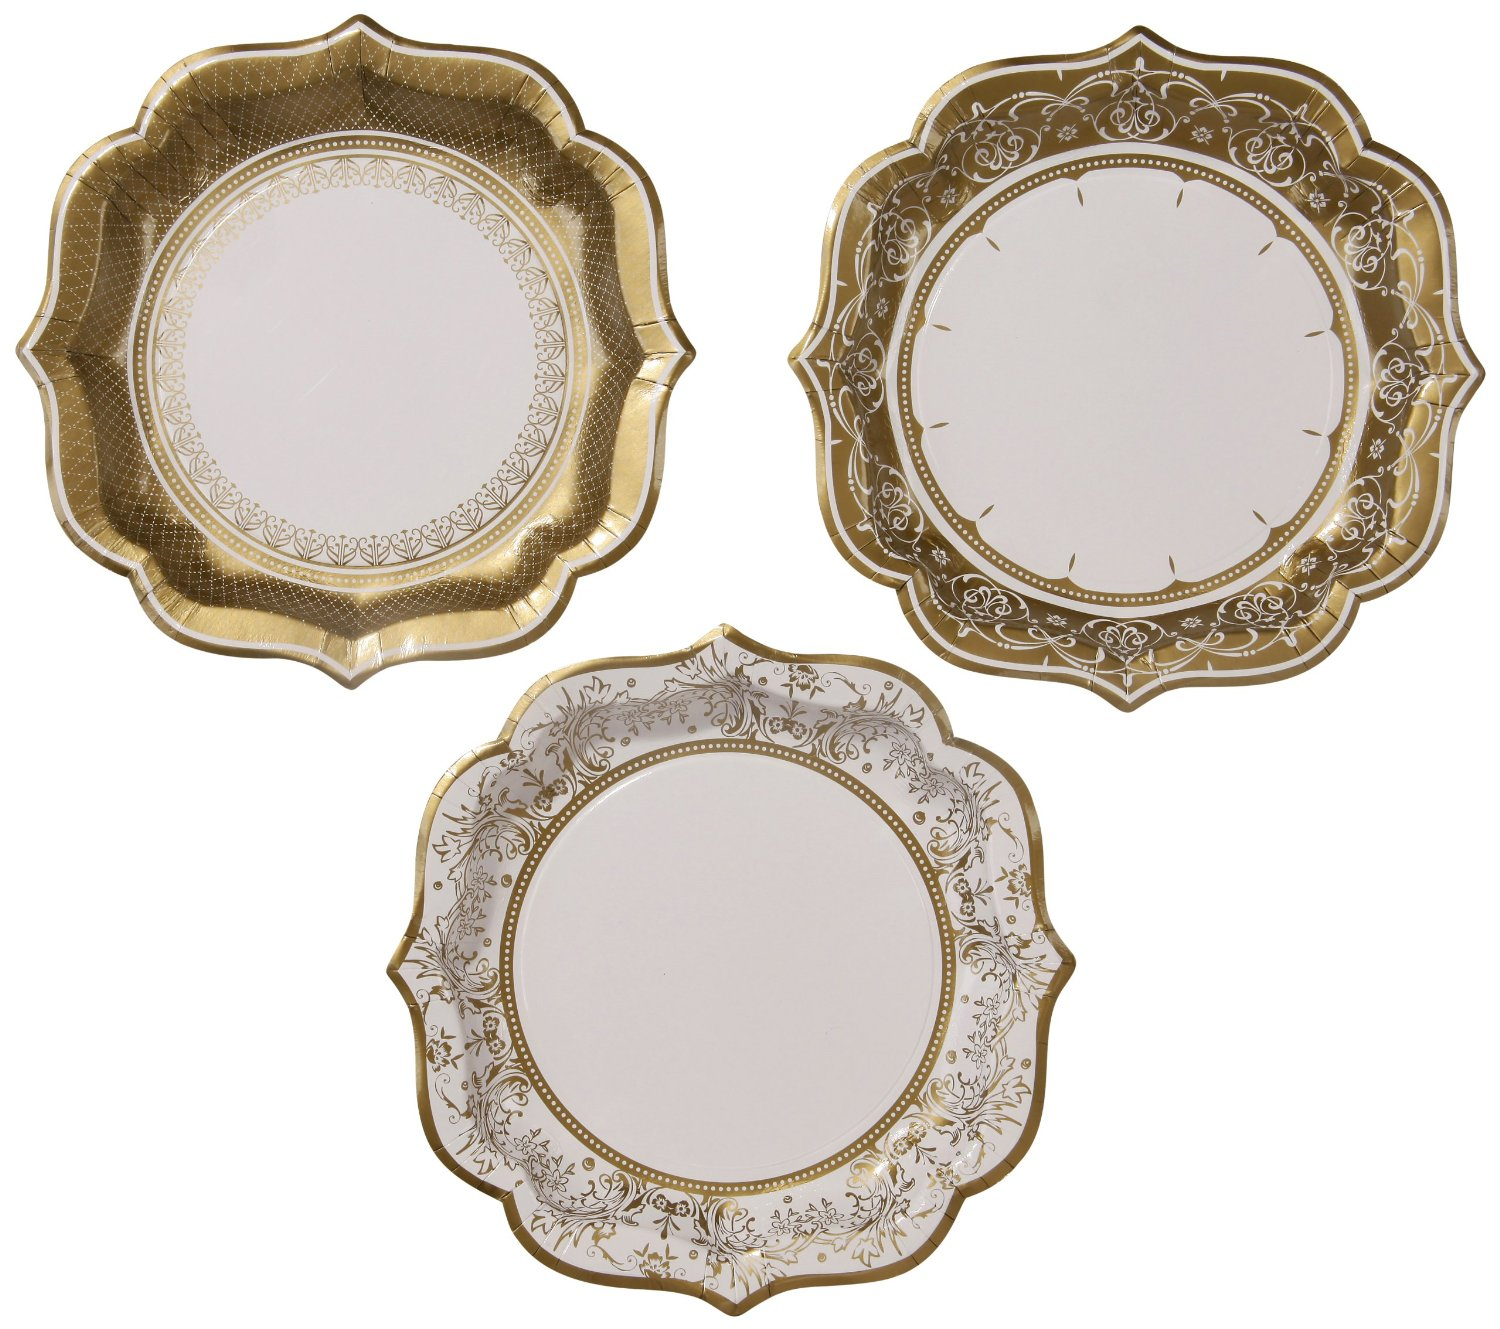 Talking Tables Gold Party Large Gold Party Plates for a Wedding or as Party Decorations Gold (12 Pack) Medium - Walmart.com  sc 1 st  Walmart.com & Talking Tables Gold Party Large Gold Party Plates for a Wedding or ...